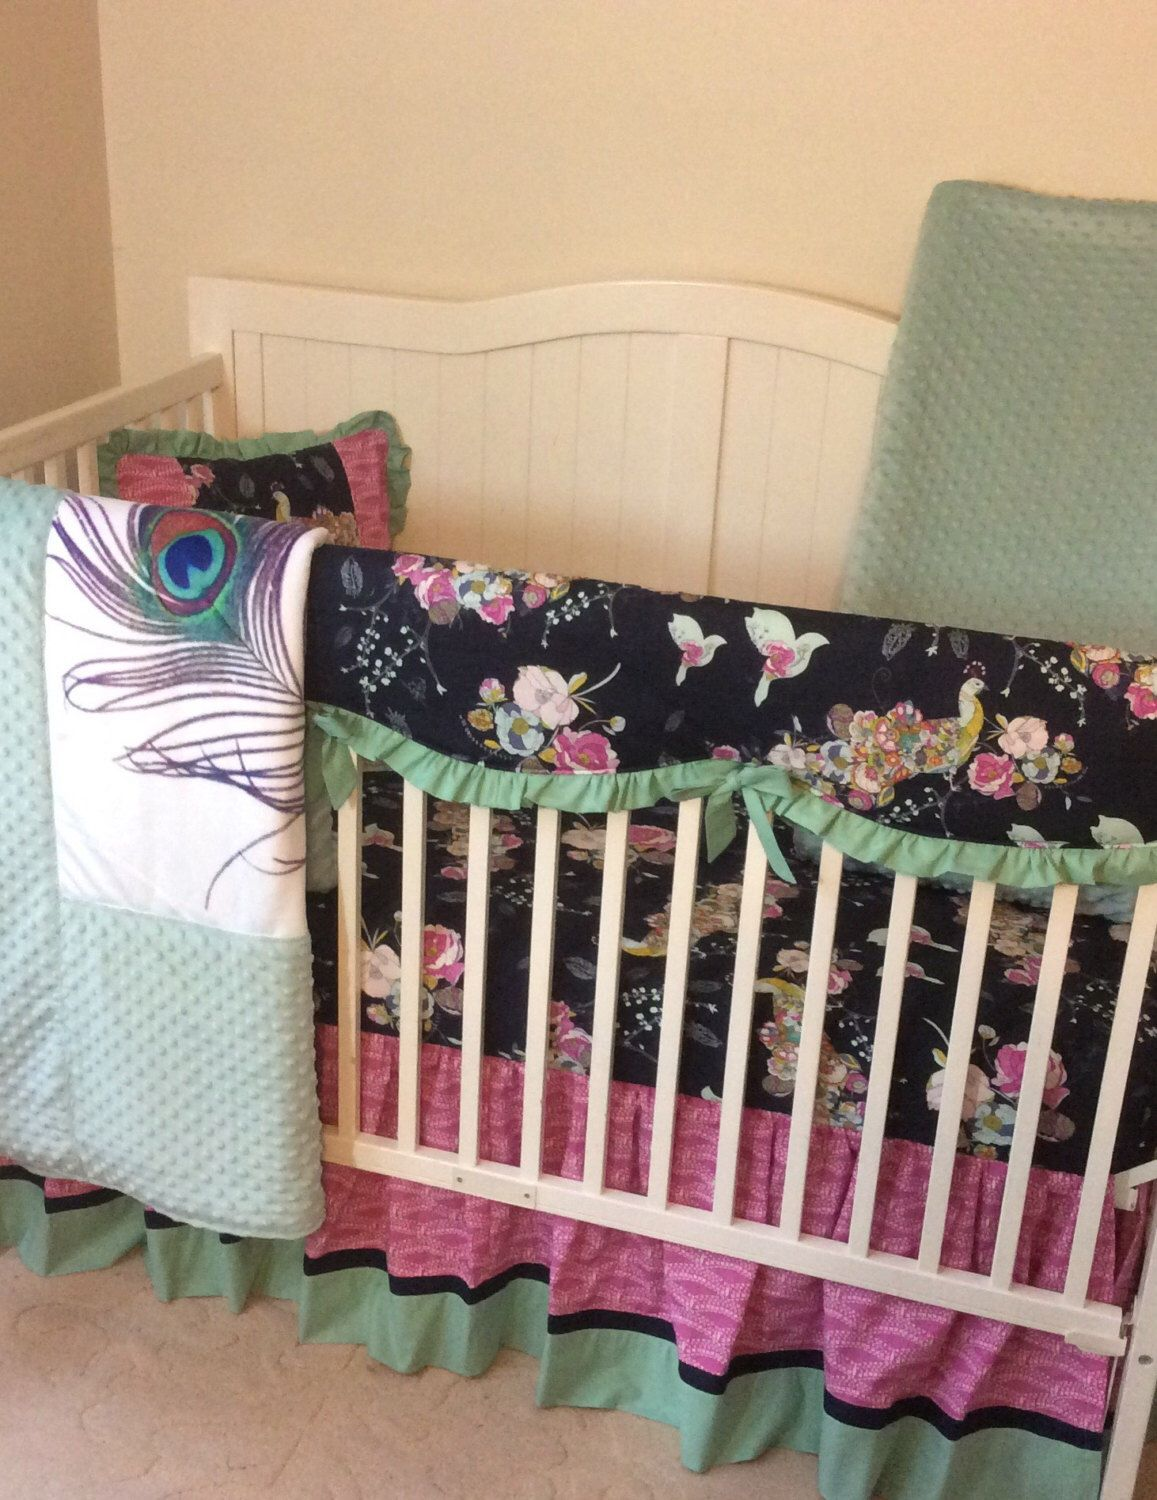 Peacock Baby Bedding Sets Part - 18: Navy teal and fuchsia peacock crib bedding for a baby girl  https:--www.etsy.com-listing-117738662-peacock-crib-bedding-set -teal-navy-and